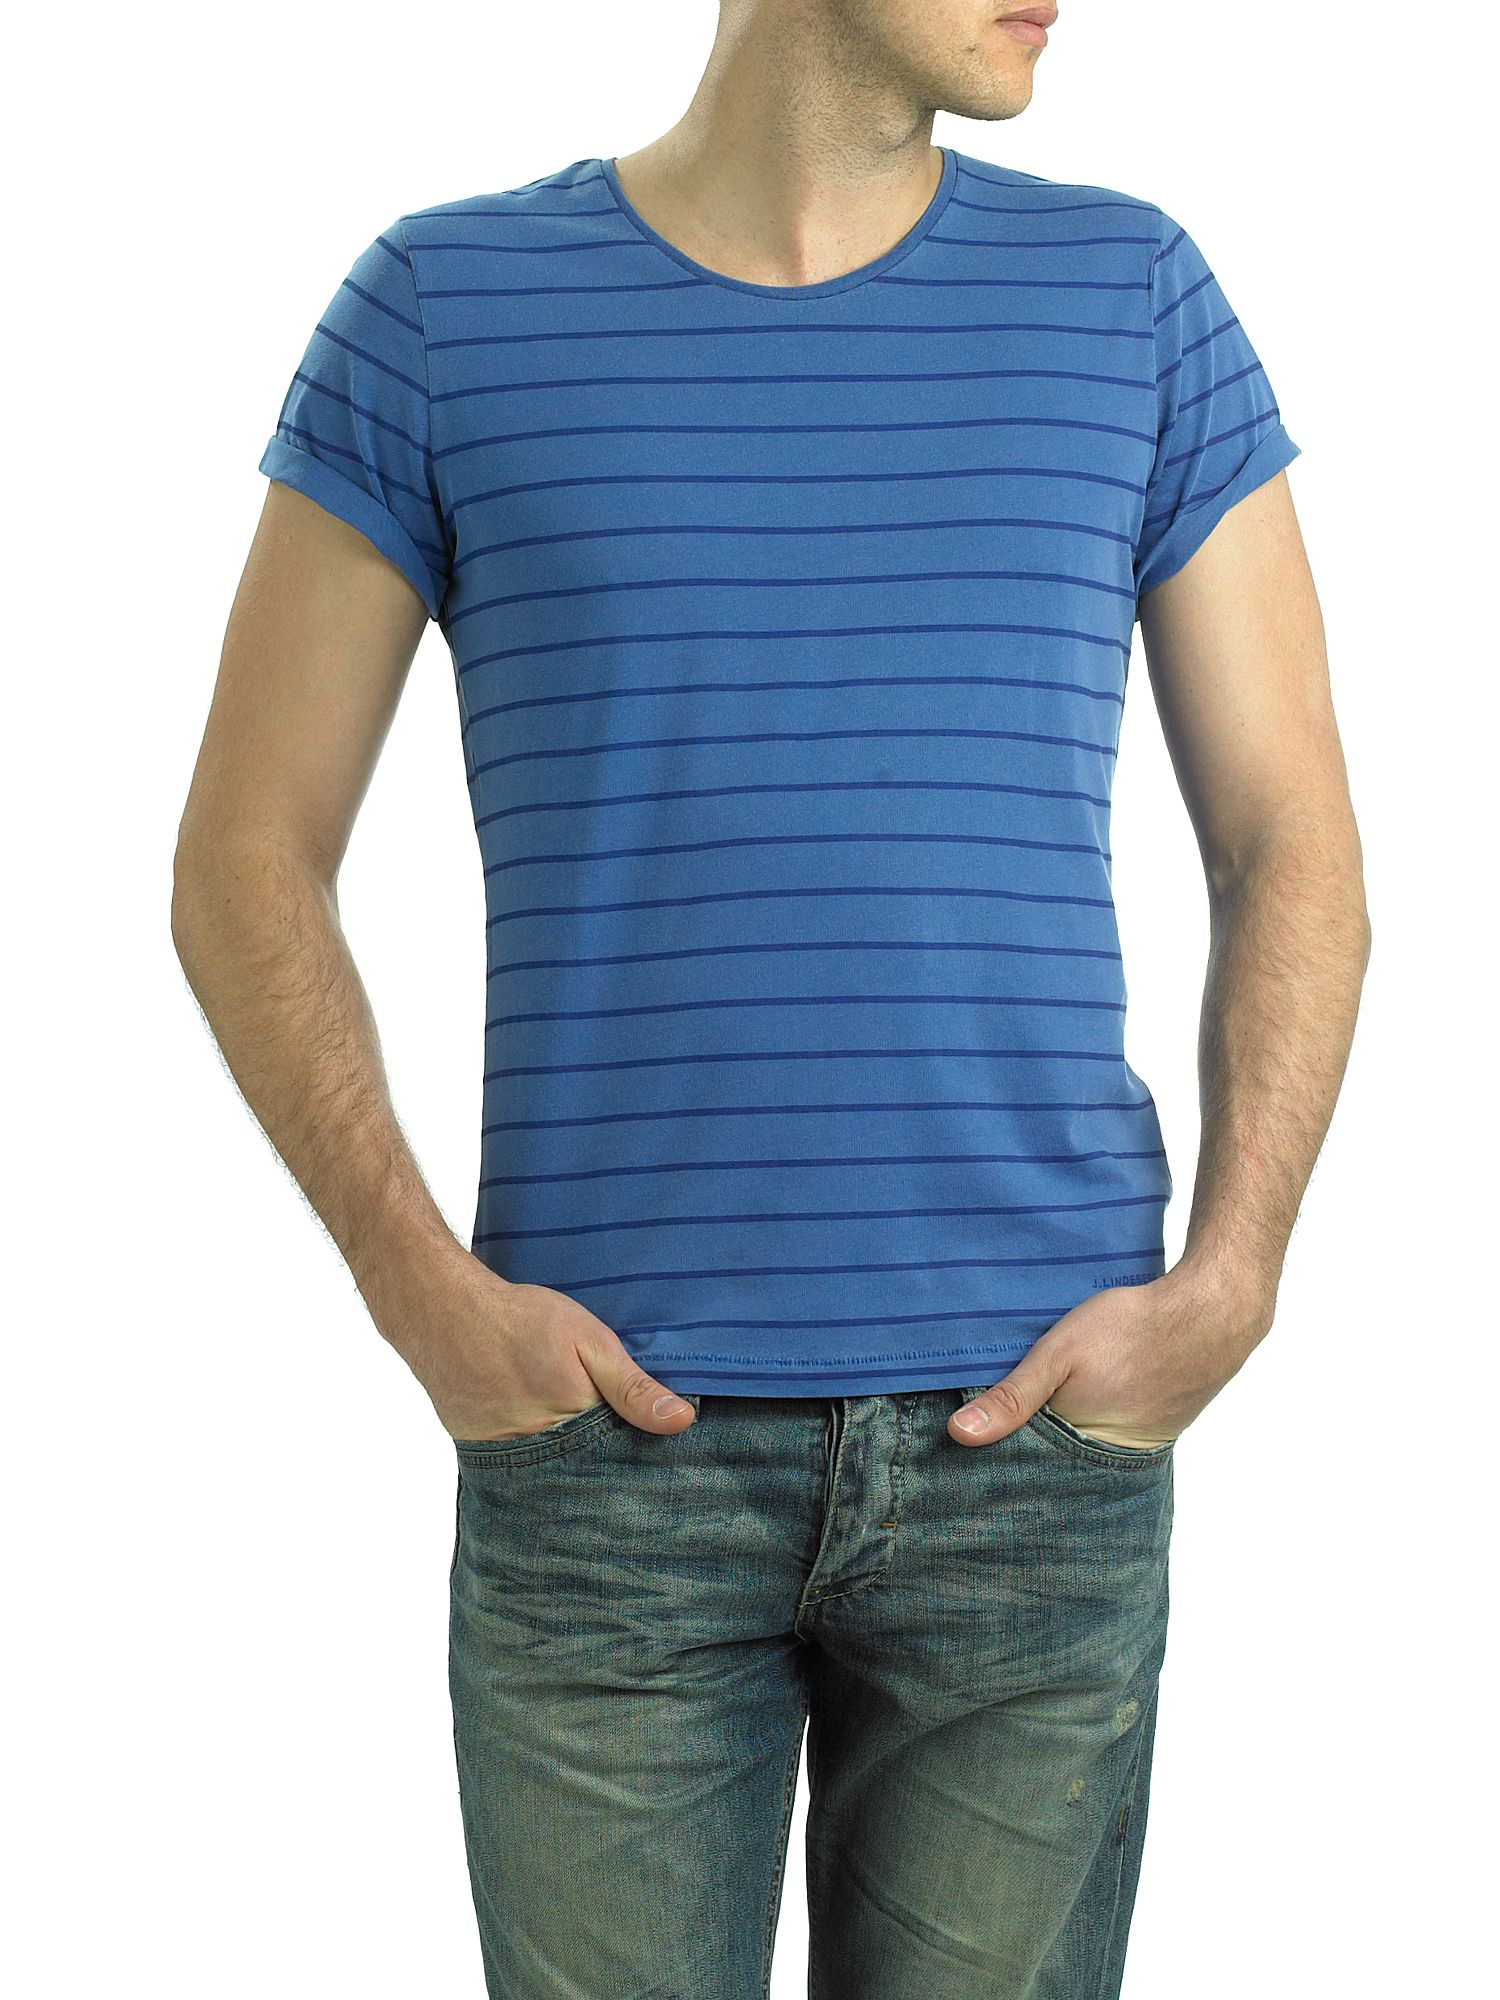 J Lindeberg Striped T-shirt Blue product image